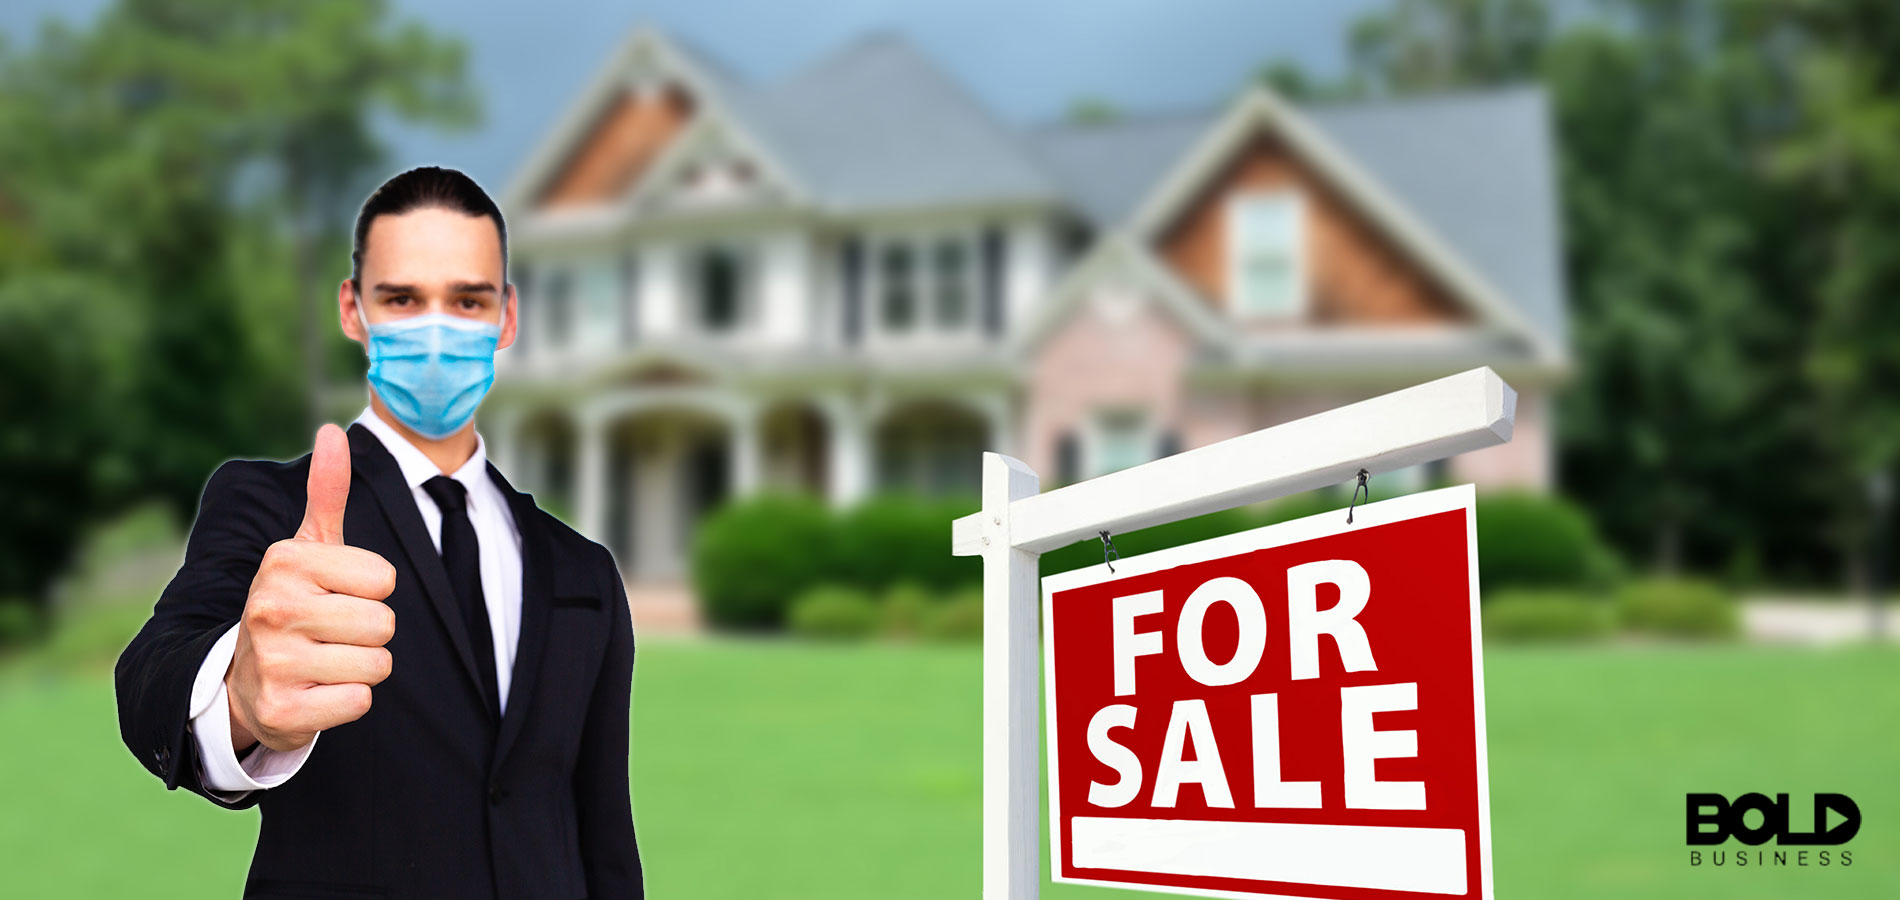 A real estate agent wearing a mask